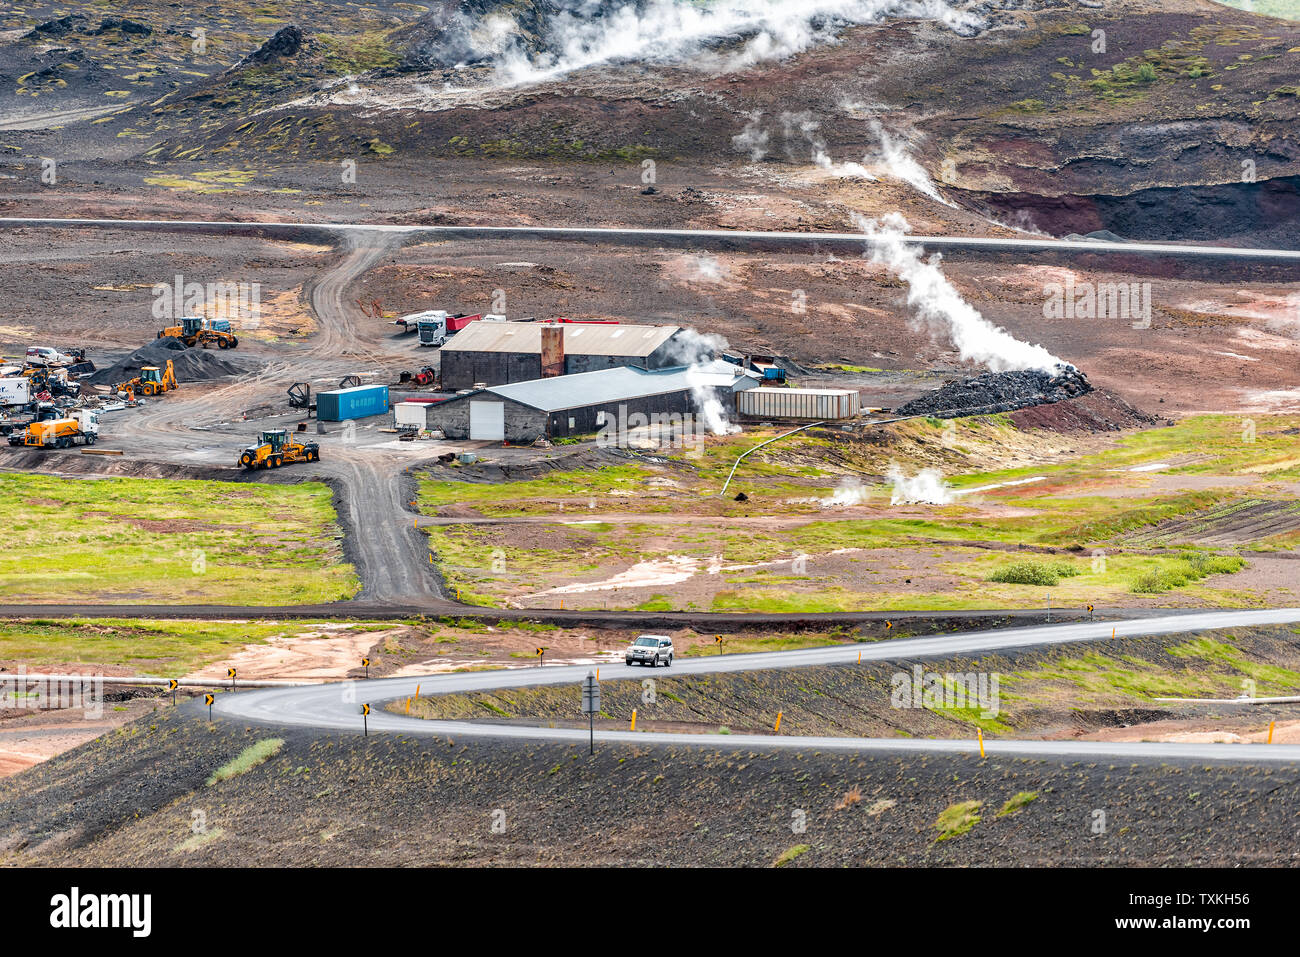 Reykjahlid, Iceland - June 16, 2018: Landscape high angle view near lake Myvatn and steam vents during cloudy day by house and ring road - Stock Image